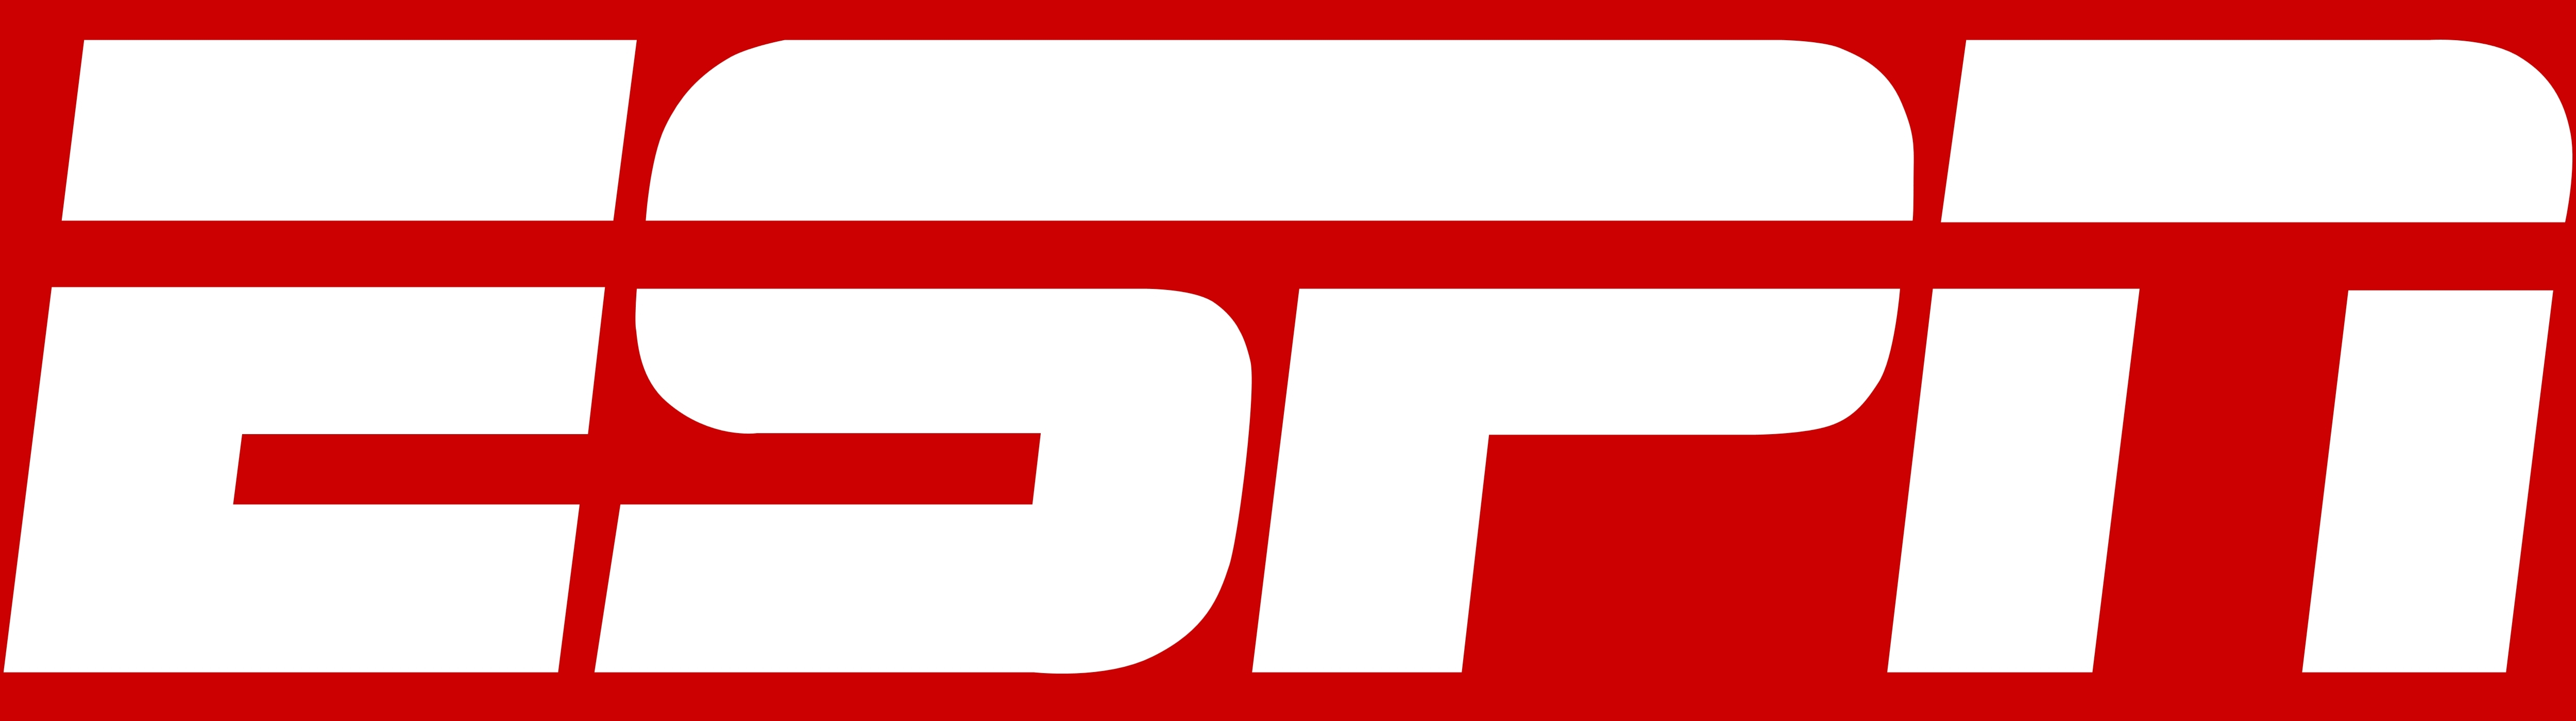 espn � logos download